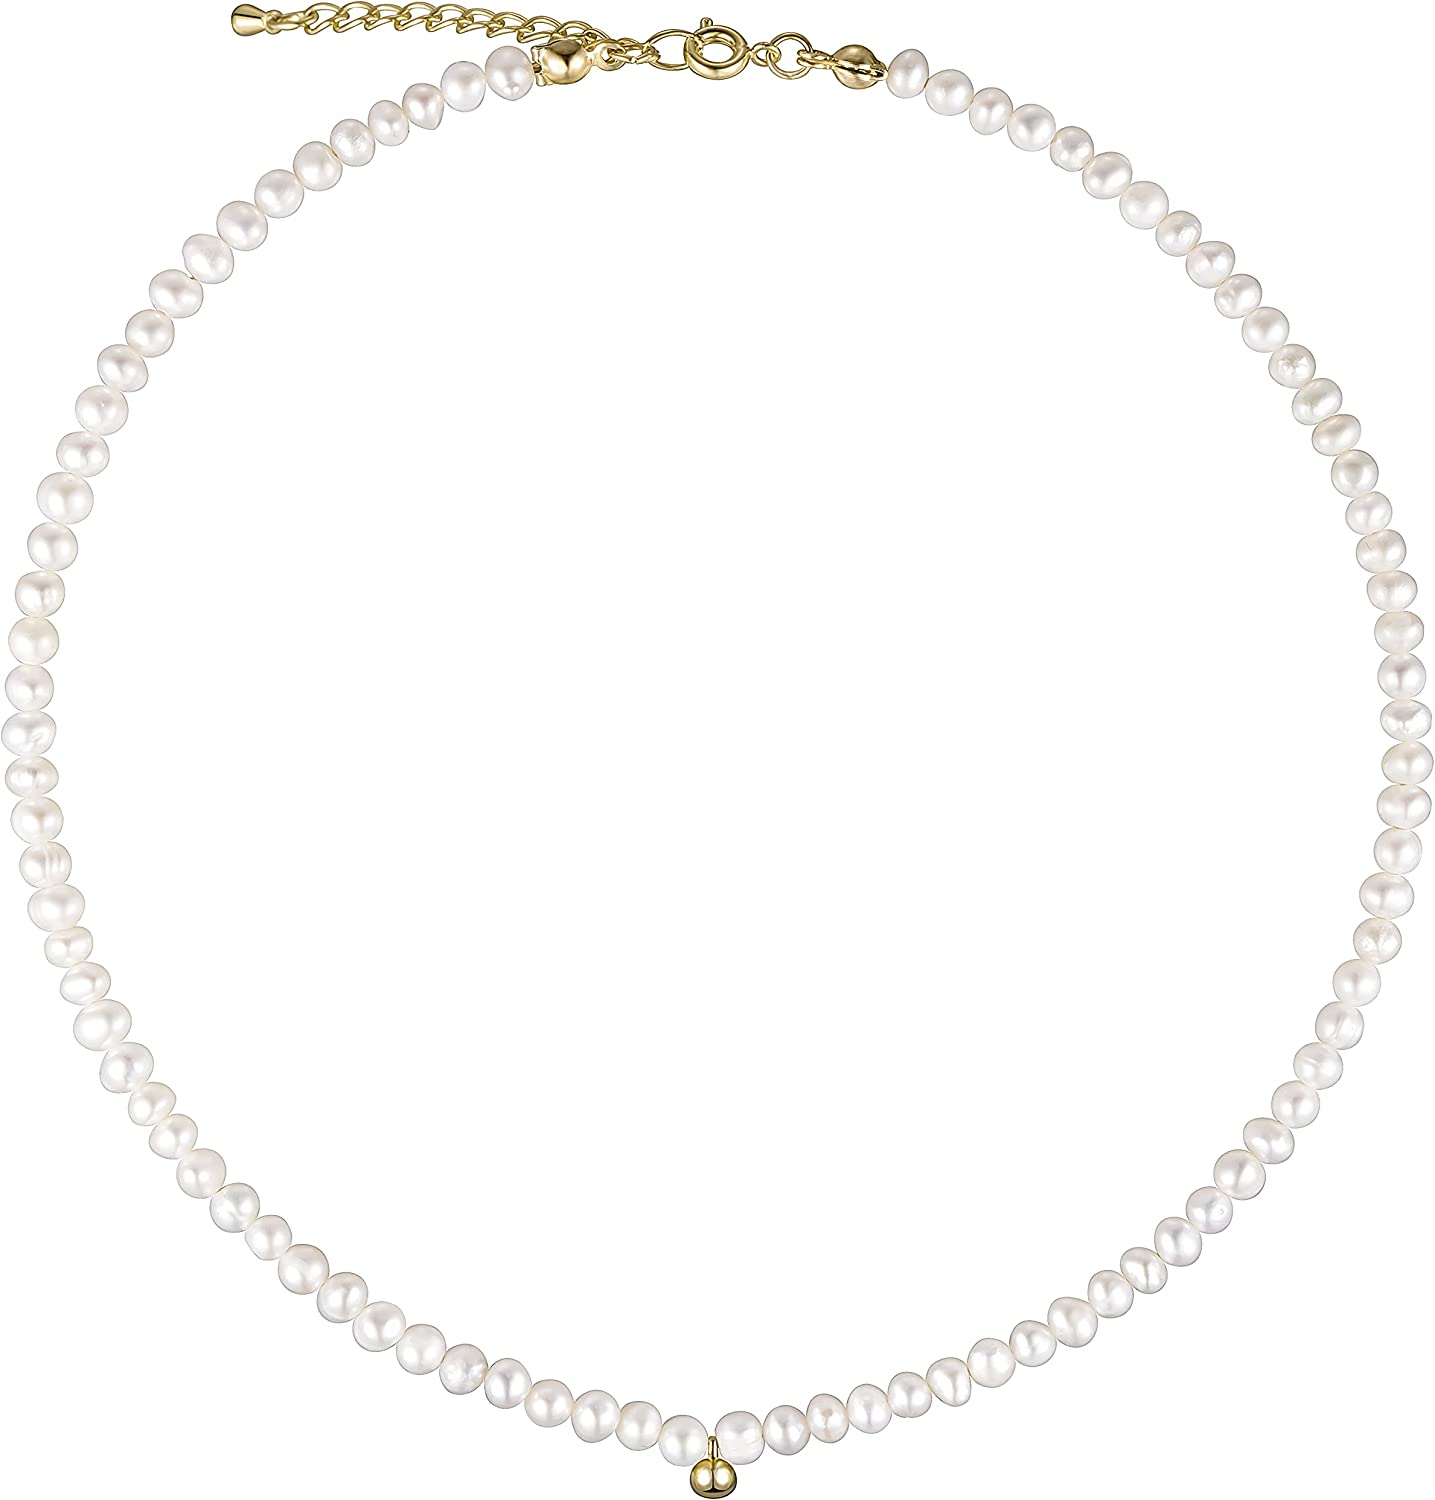 Cowlyn Pearl Strands Choker Necklace 18K Gold Bead Ball Pendant Baroque Pearls Tiny Short Chain Handmade Vintage Jewelry for Women(with Gift Box)